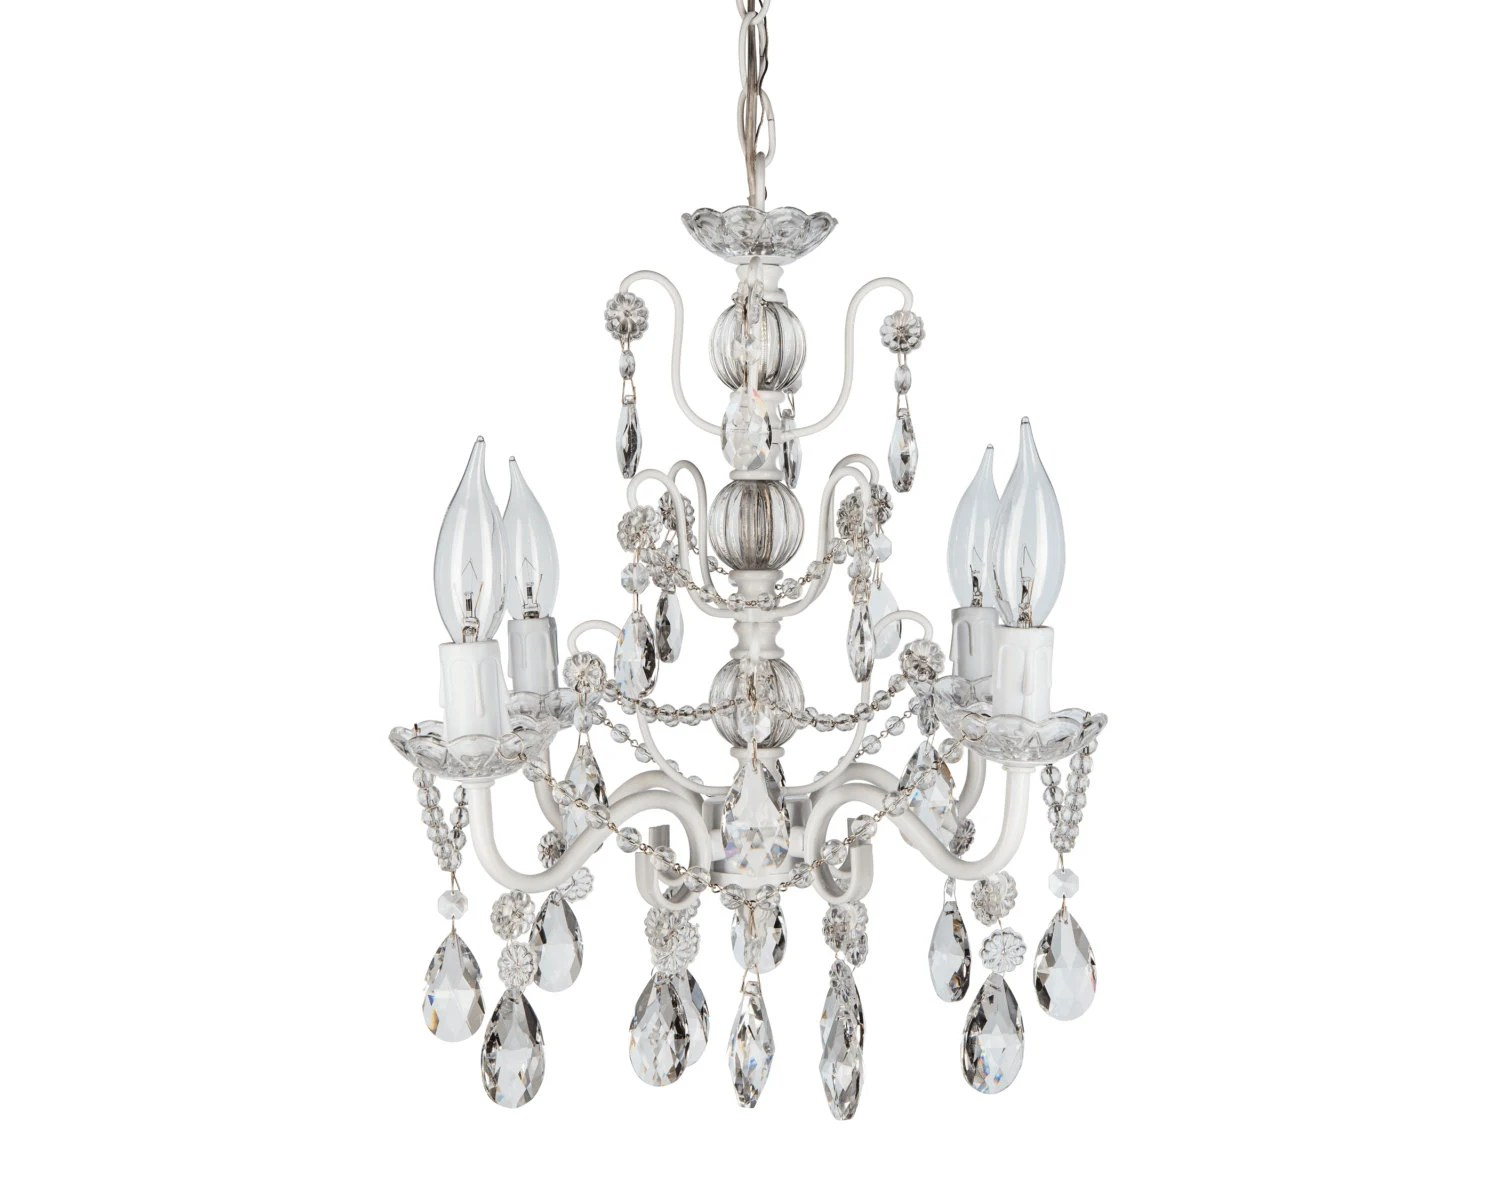 White Mini Crystal Chandelier 4 Lights Swag By